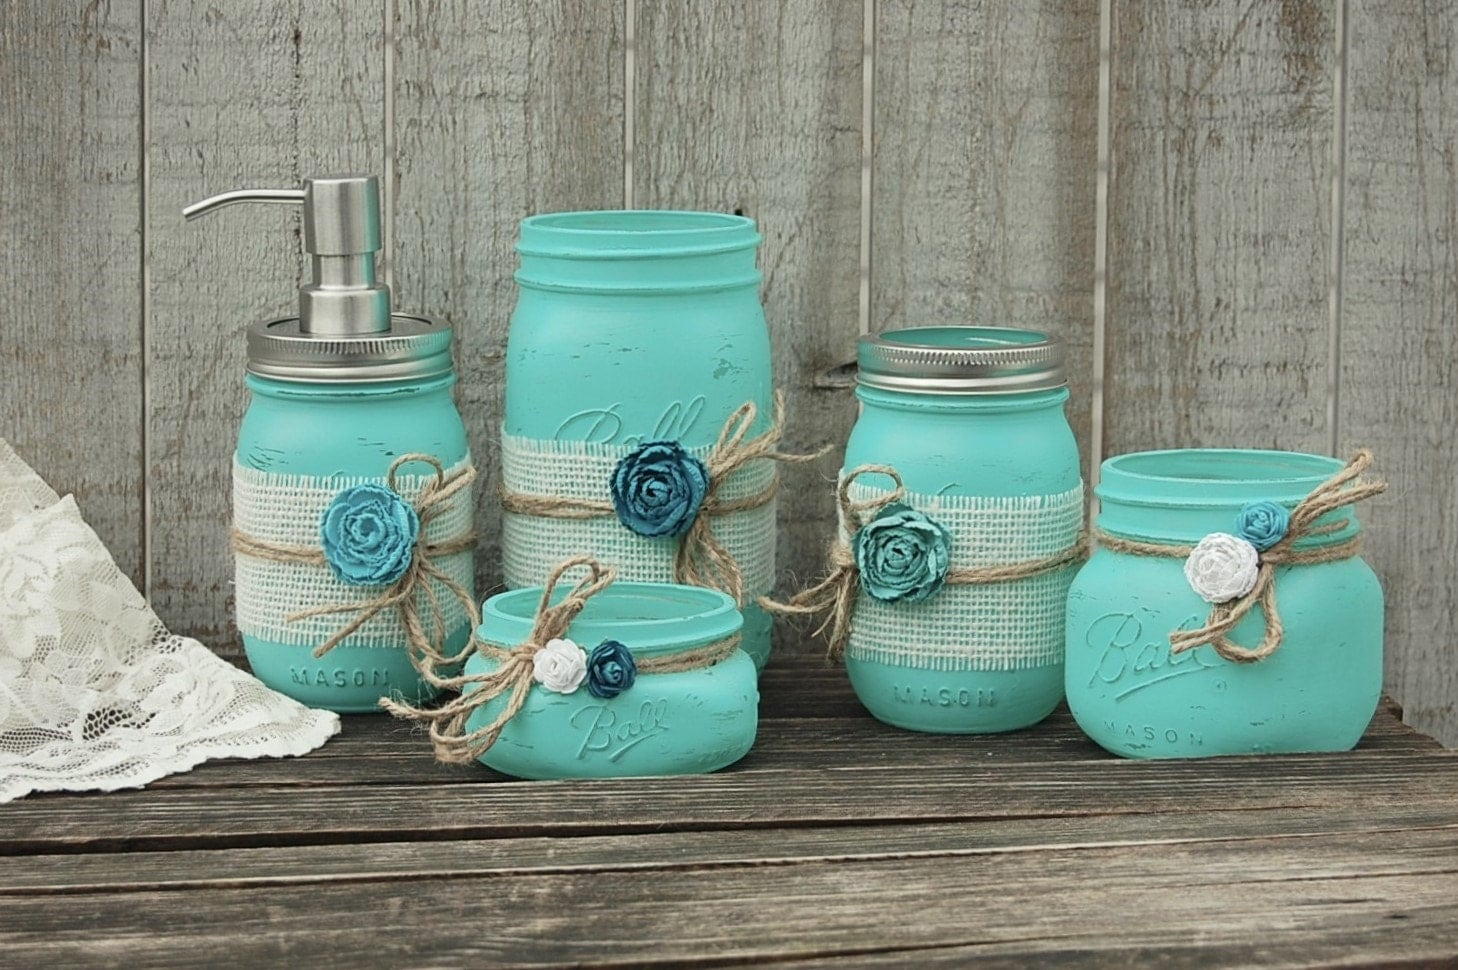 Mason Jar Soap Pump Turquoise Blue Set Rustic Bathroom